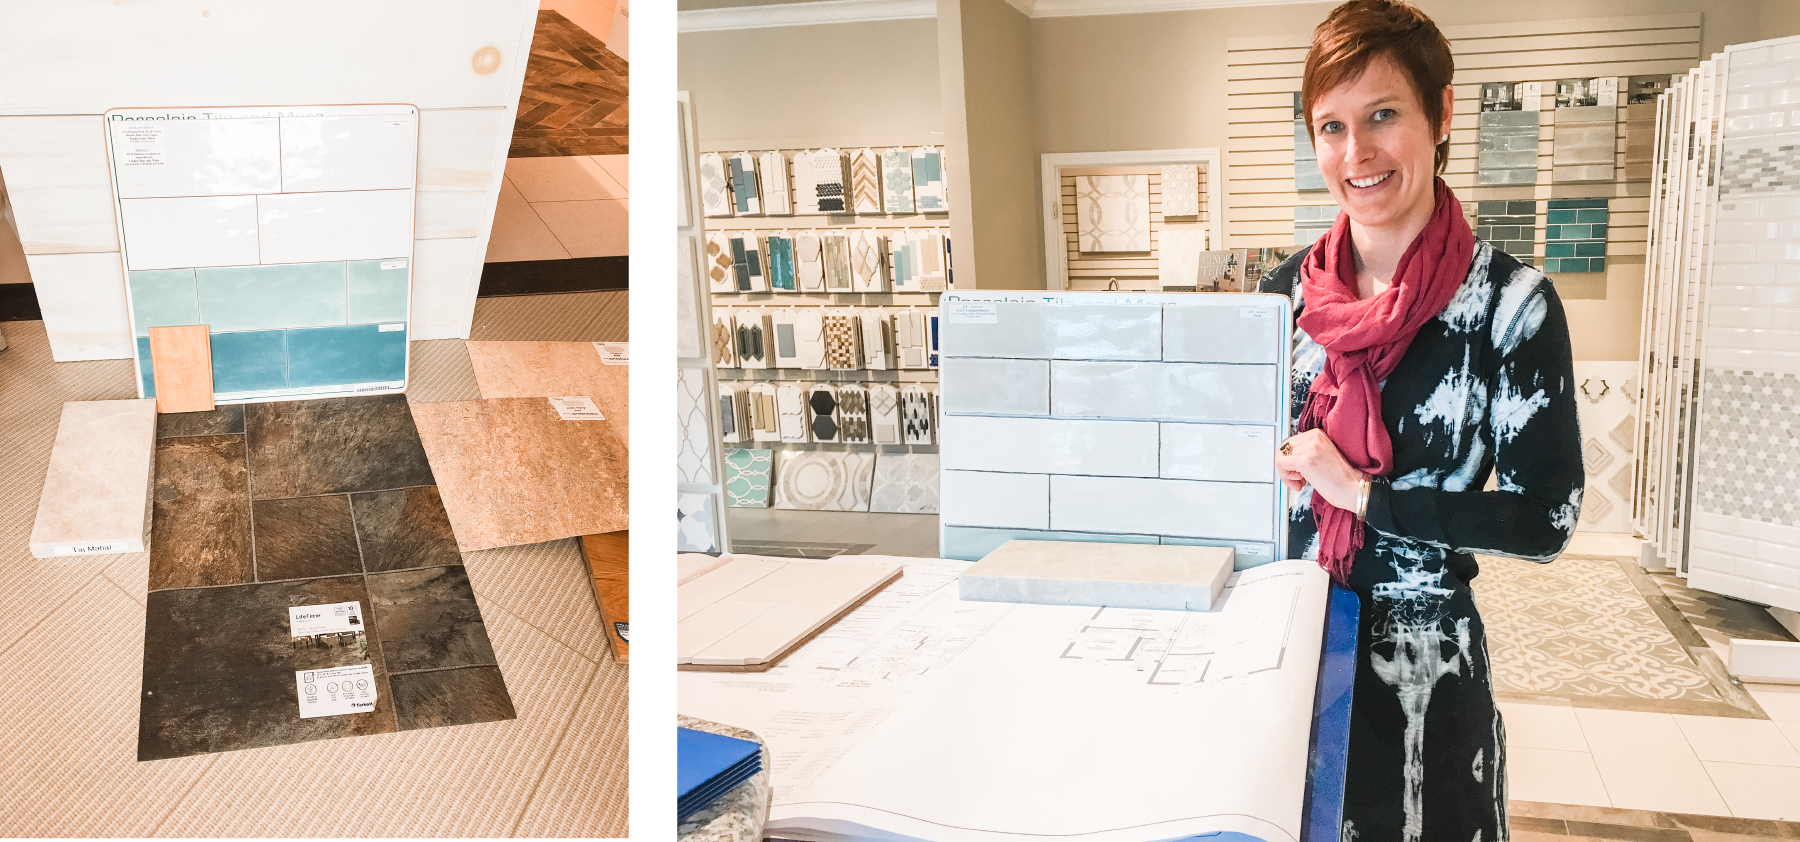 Shopping for interior finishes is one of the best parts of my job. 🛍 This is a recent trip to Morningstar Stone & Tile. We're putting together all the pieces. Here's how I pick finishes, first to last: cabinets & countertops > flooring > backsplash tile. With plumbing 🚽 and light fixtures 💡 somewhere in there. It's a tough job but somebody has to do it. 😝